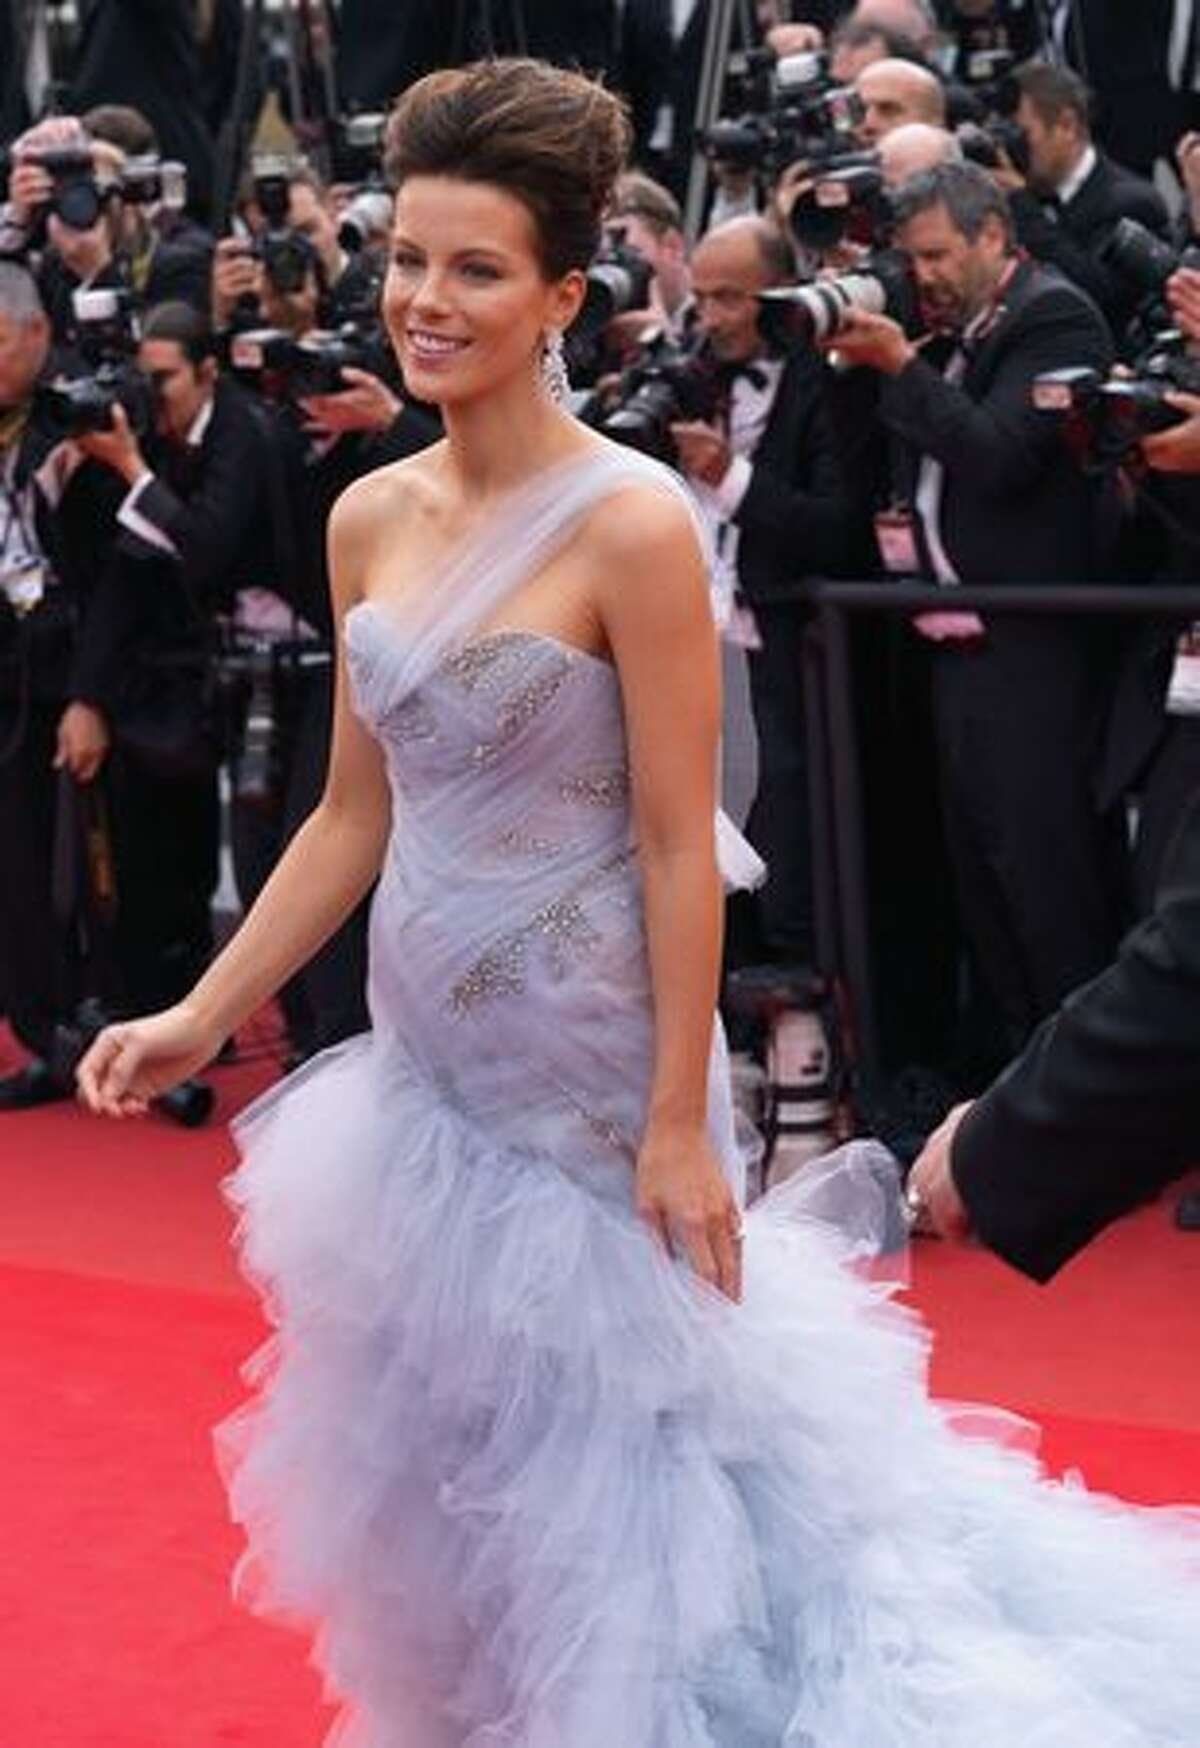 Kate Beckinsale attends the 'Robin Hood' premiere at the Palais des Festivals during the 63rd Annual Cannes International Film Festival in Cannes, France.